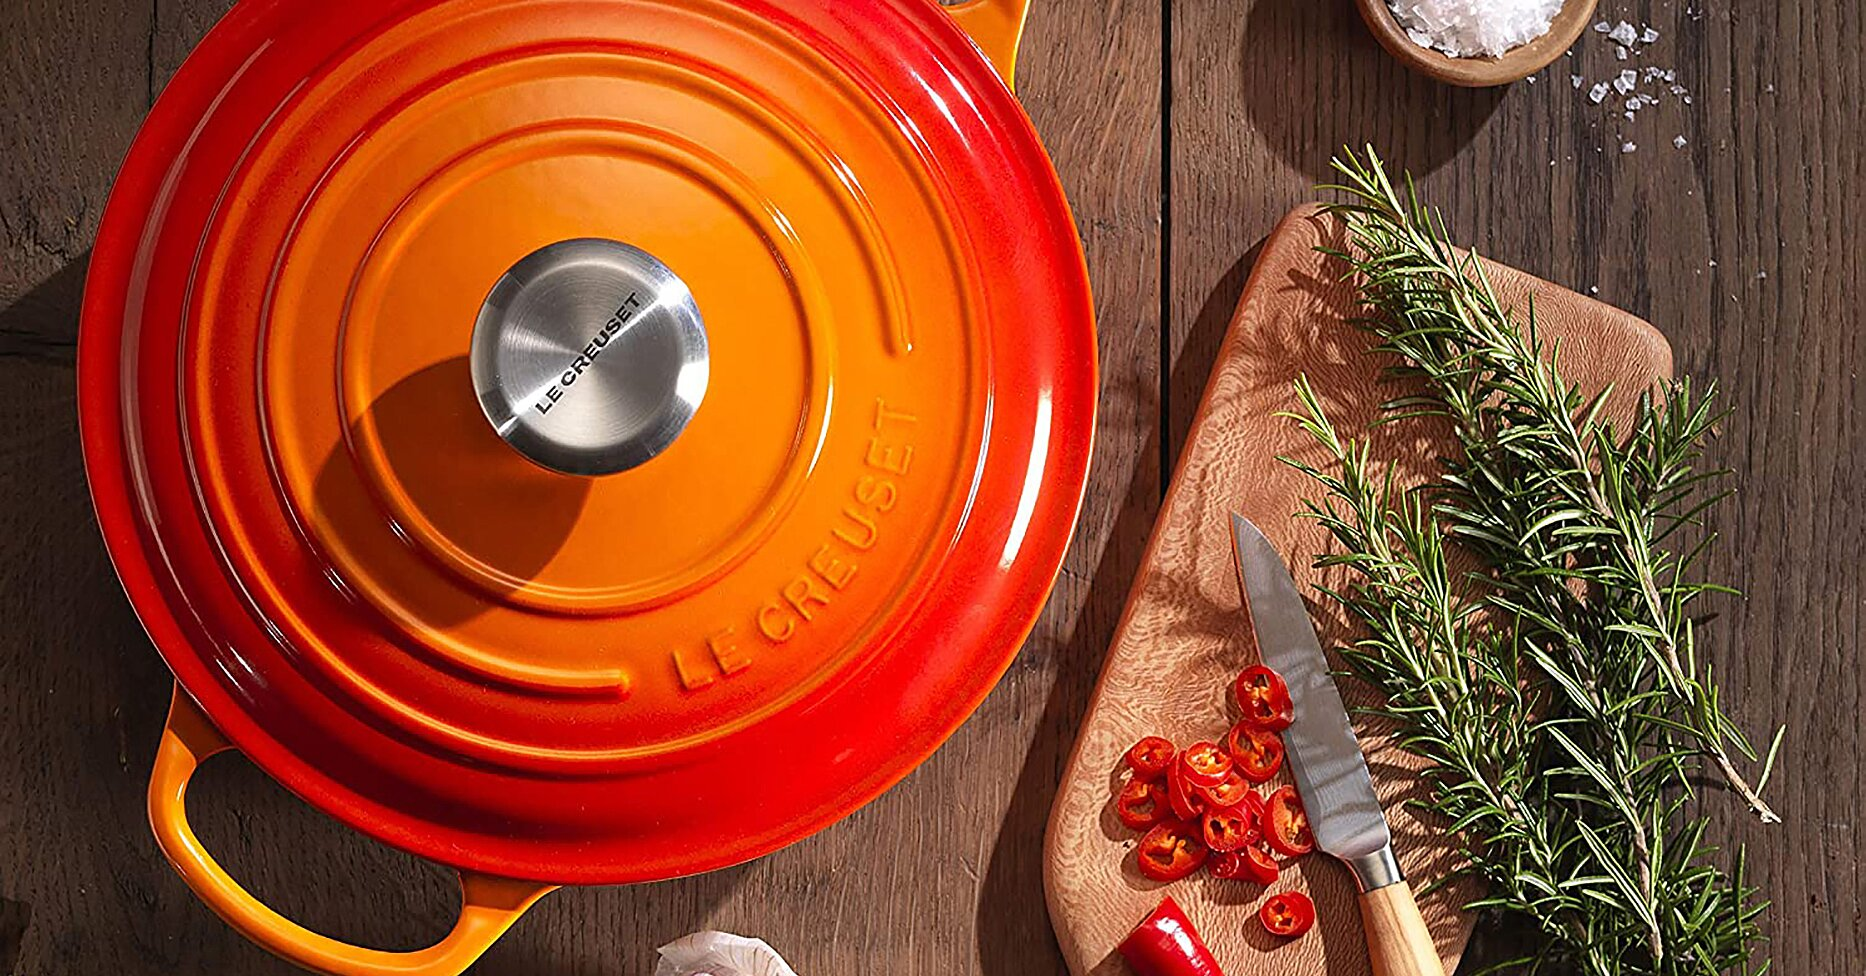 Le Creuset Is Up to 48% Off During Black Friday—Including Dutch Ovens, Stock Pots, and Cocottes